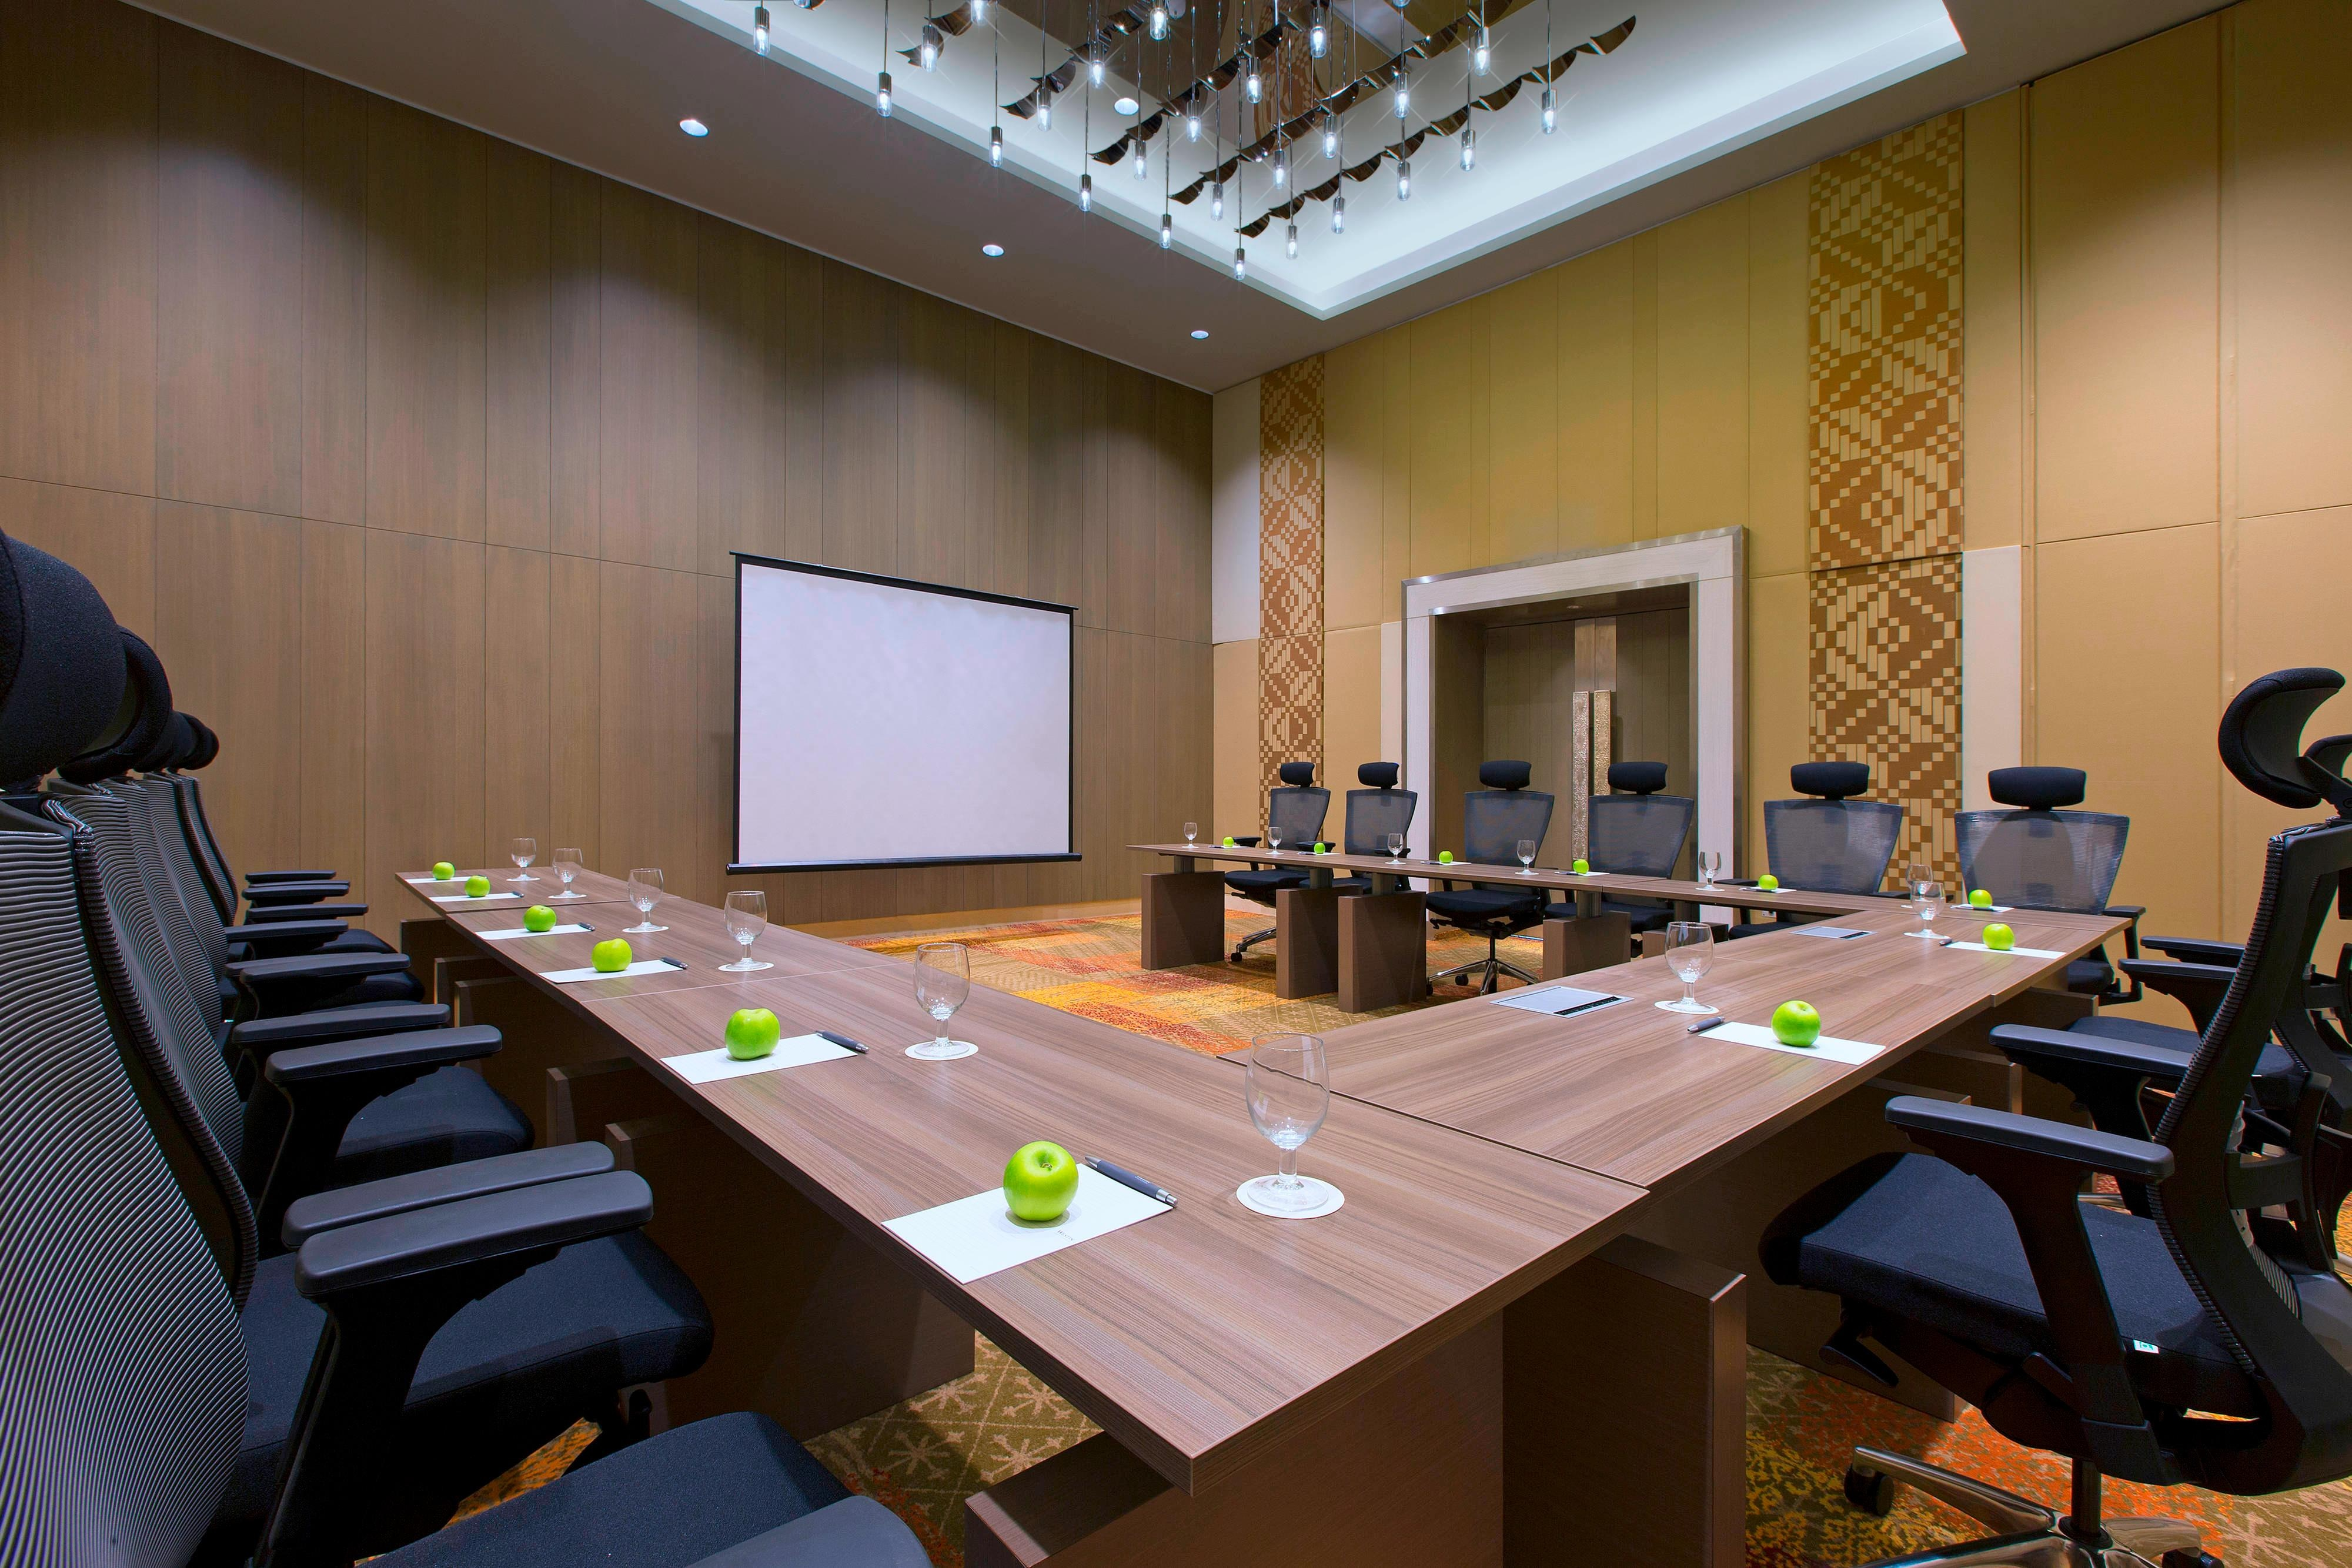 Breakout Room - Payar - U-Shape Meeting